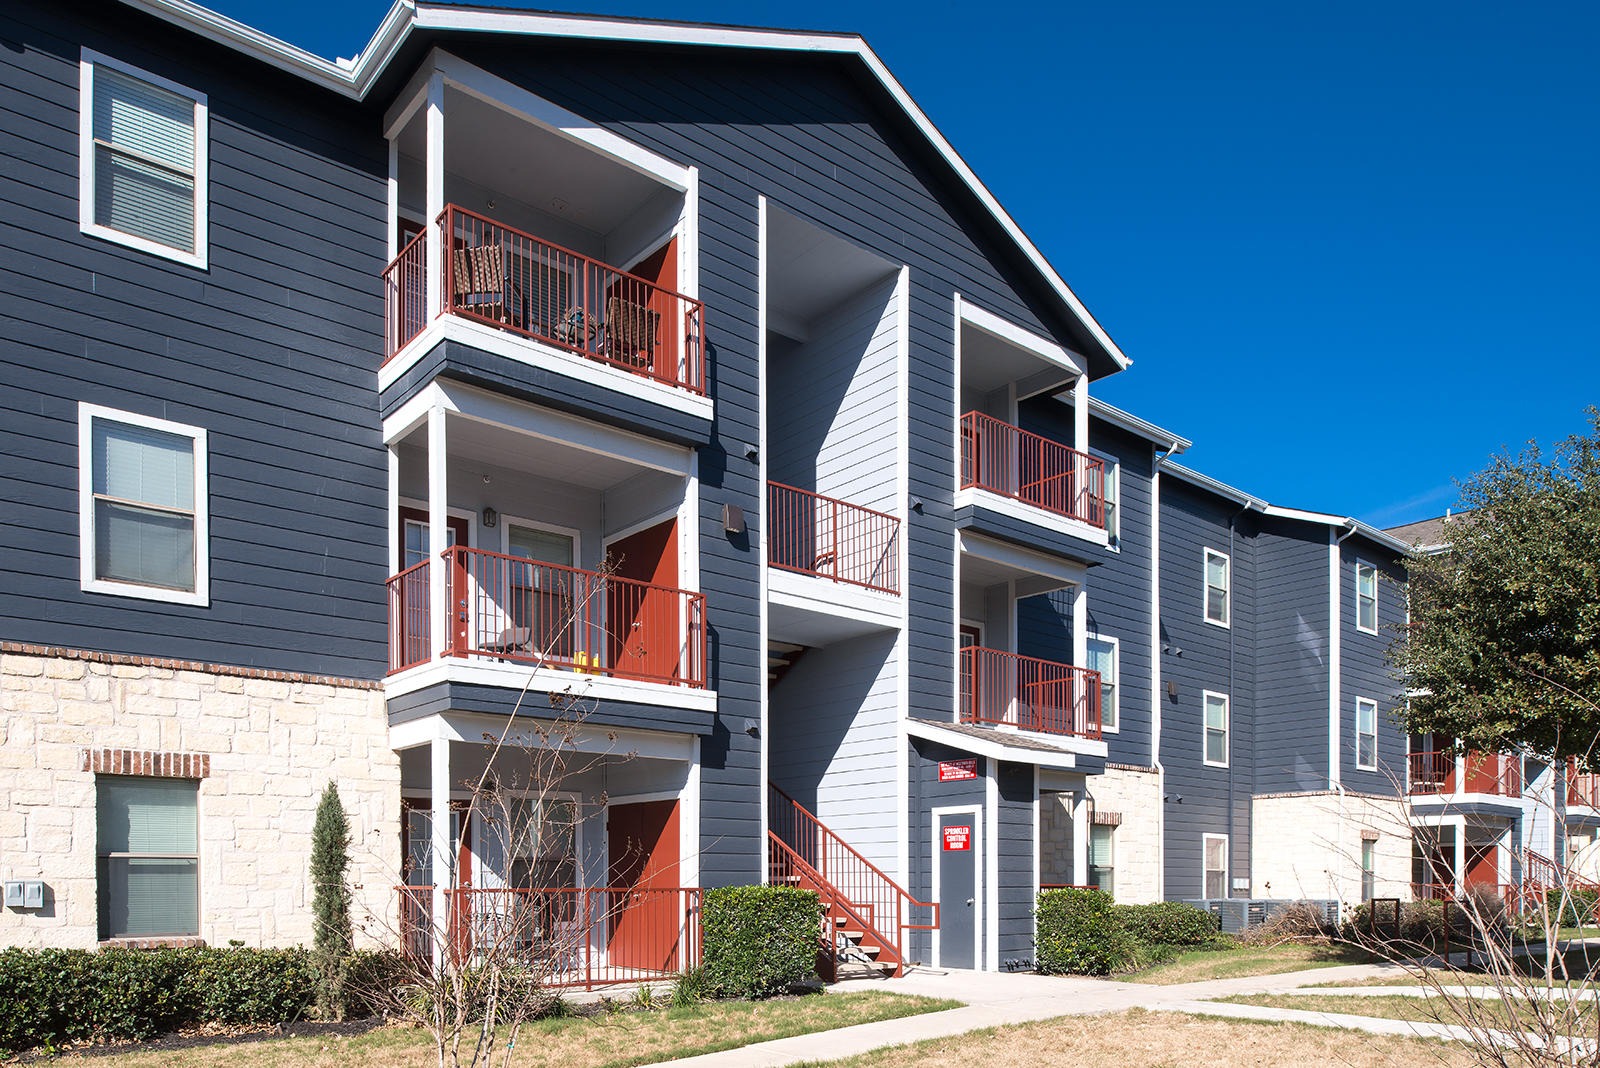 The Flats at Westover Hills by Cortland image 1